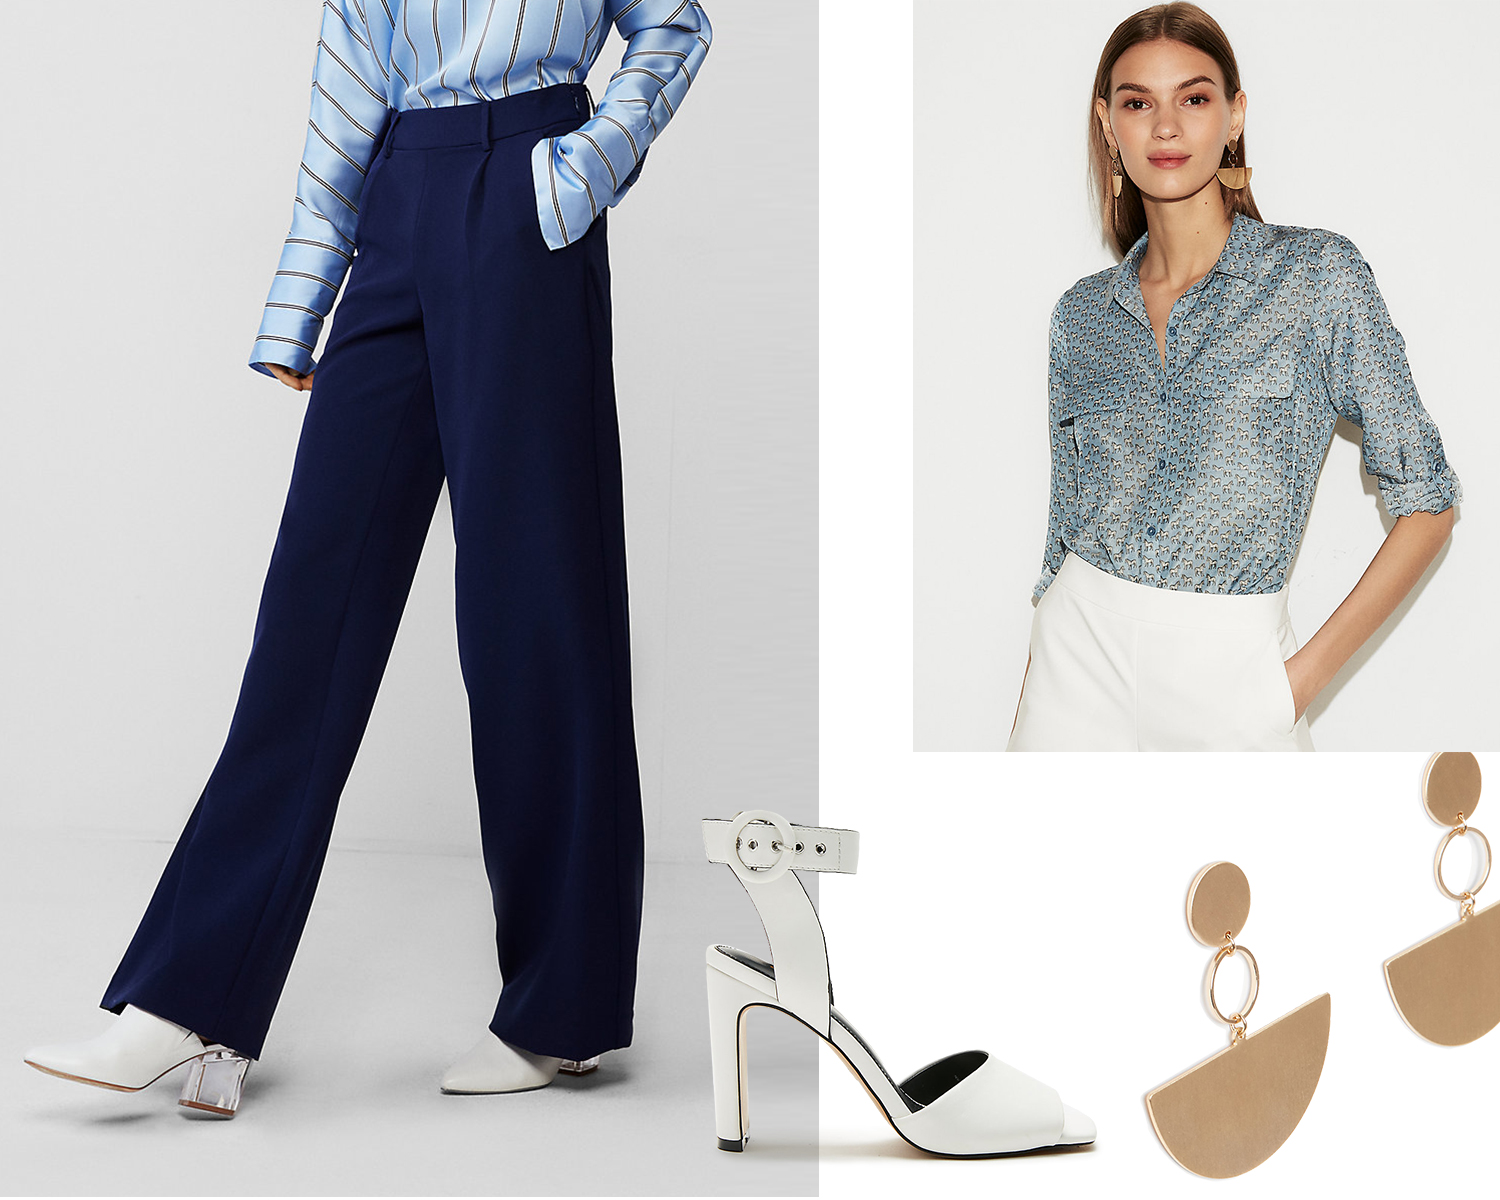 ffe389b33a Wide Leg Pants Are Here to Stay—Here's How to Wear Them – The Edit x ...